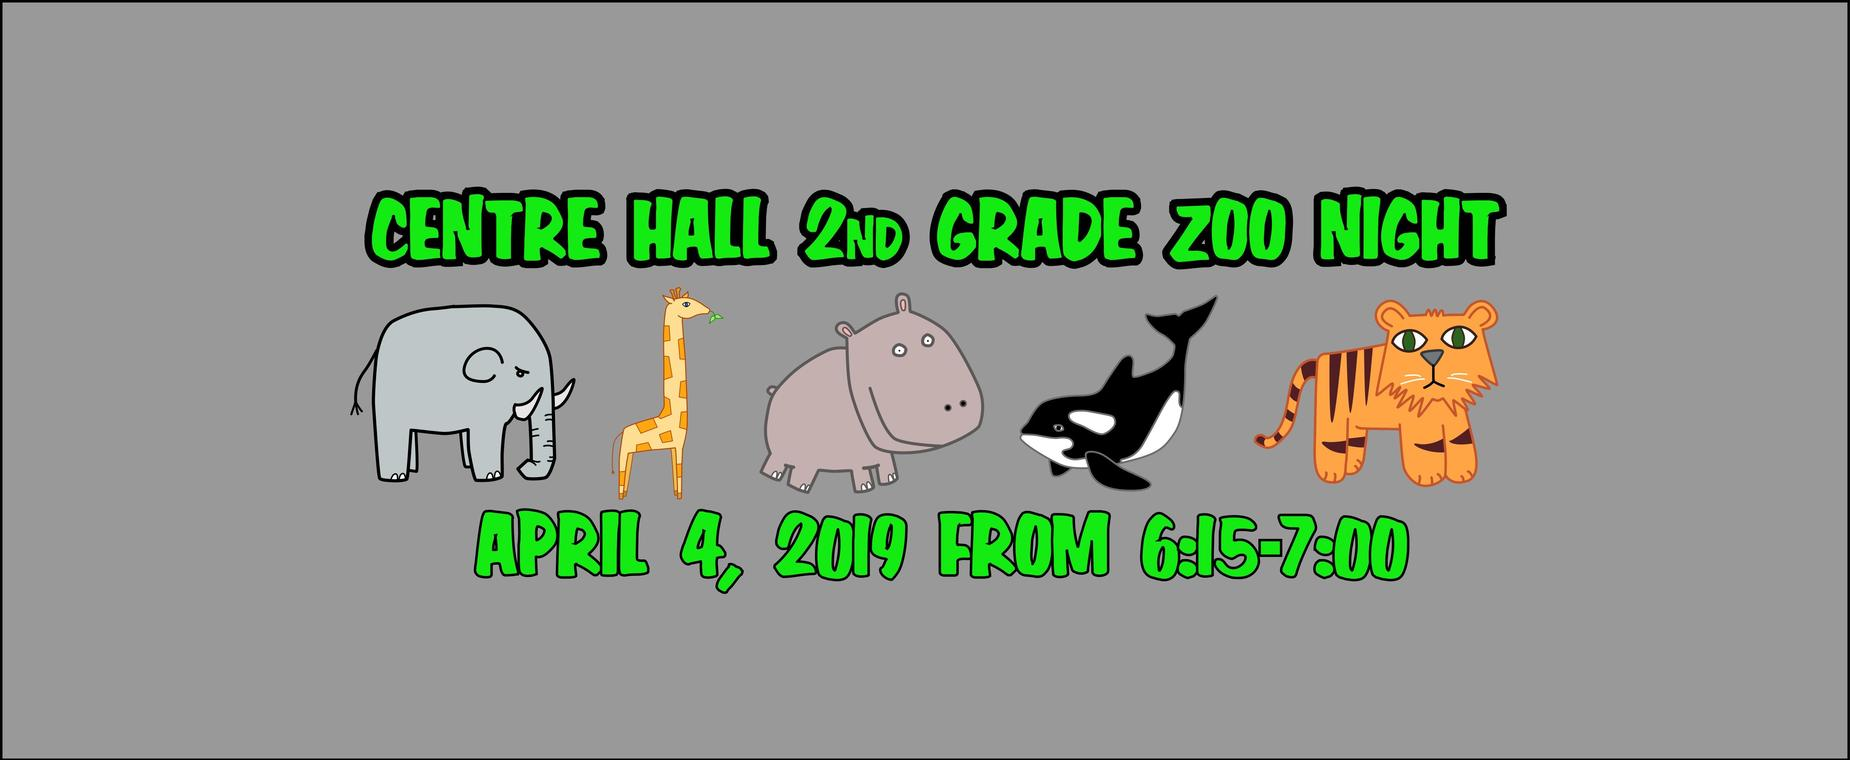 2ND Grade Zoo Night April 4 from 6:15 to 7